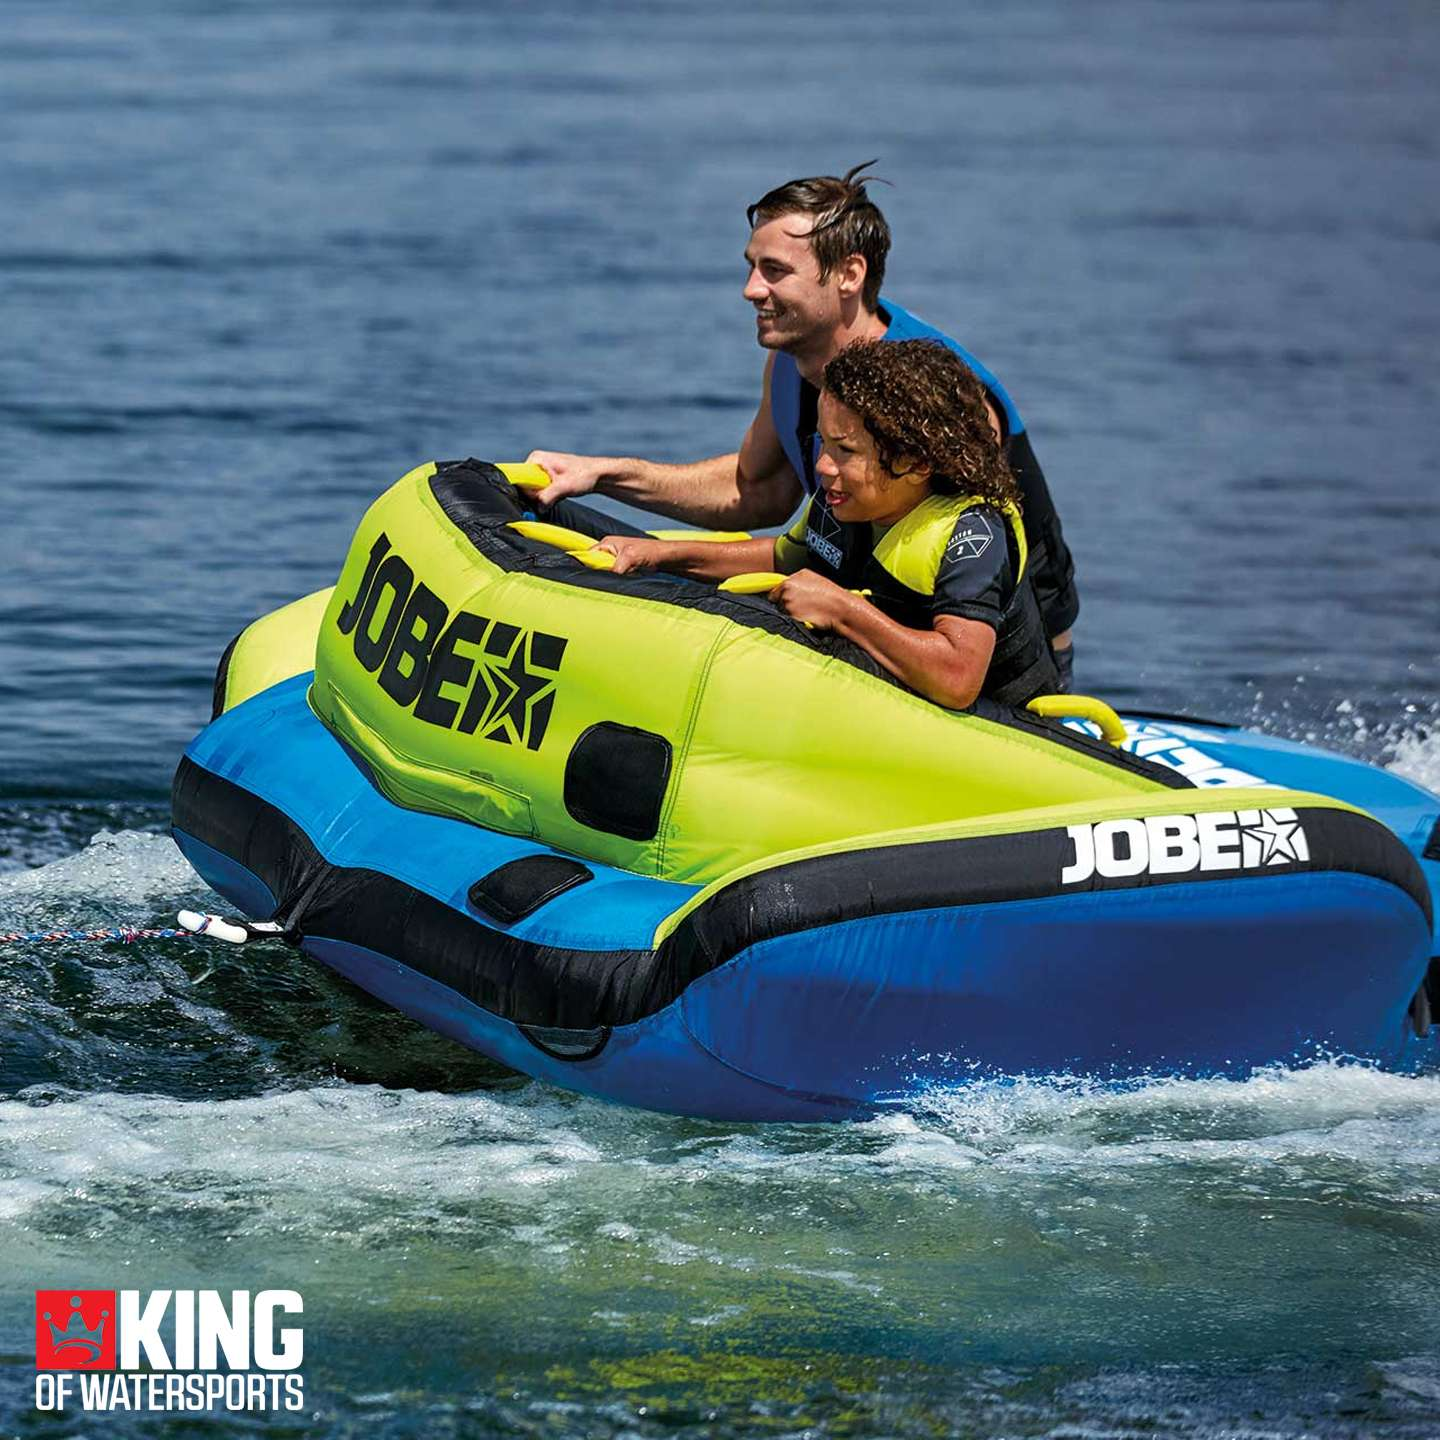 Jobe Binar 2 Inflatable Tube King Of Watersports Towing Harness Nextprev